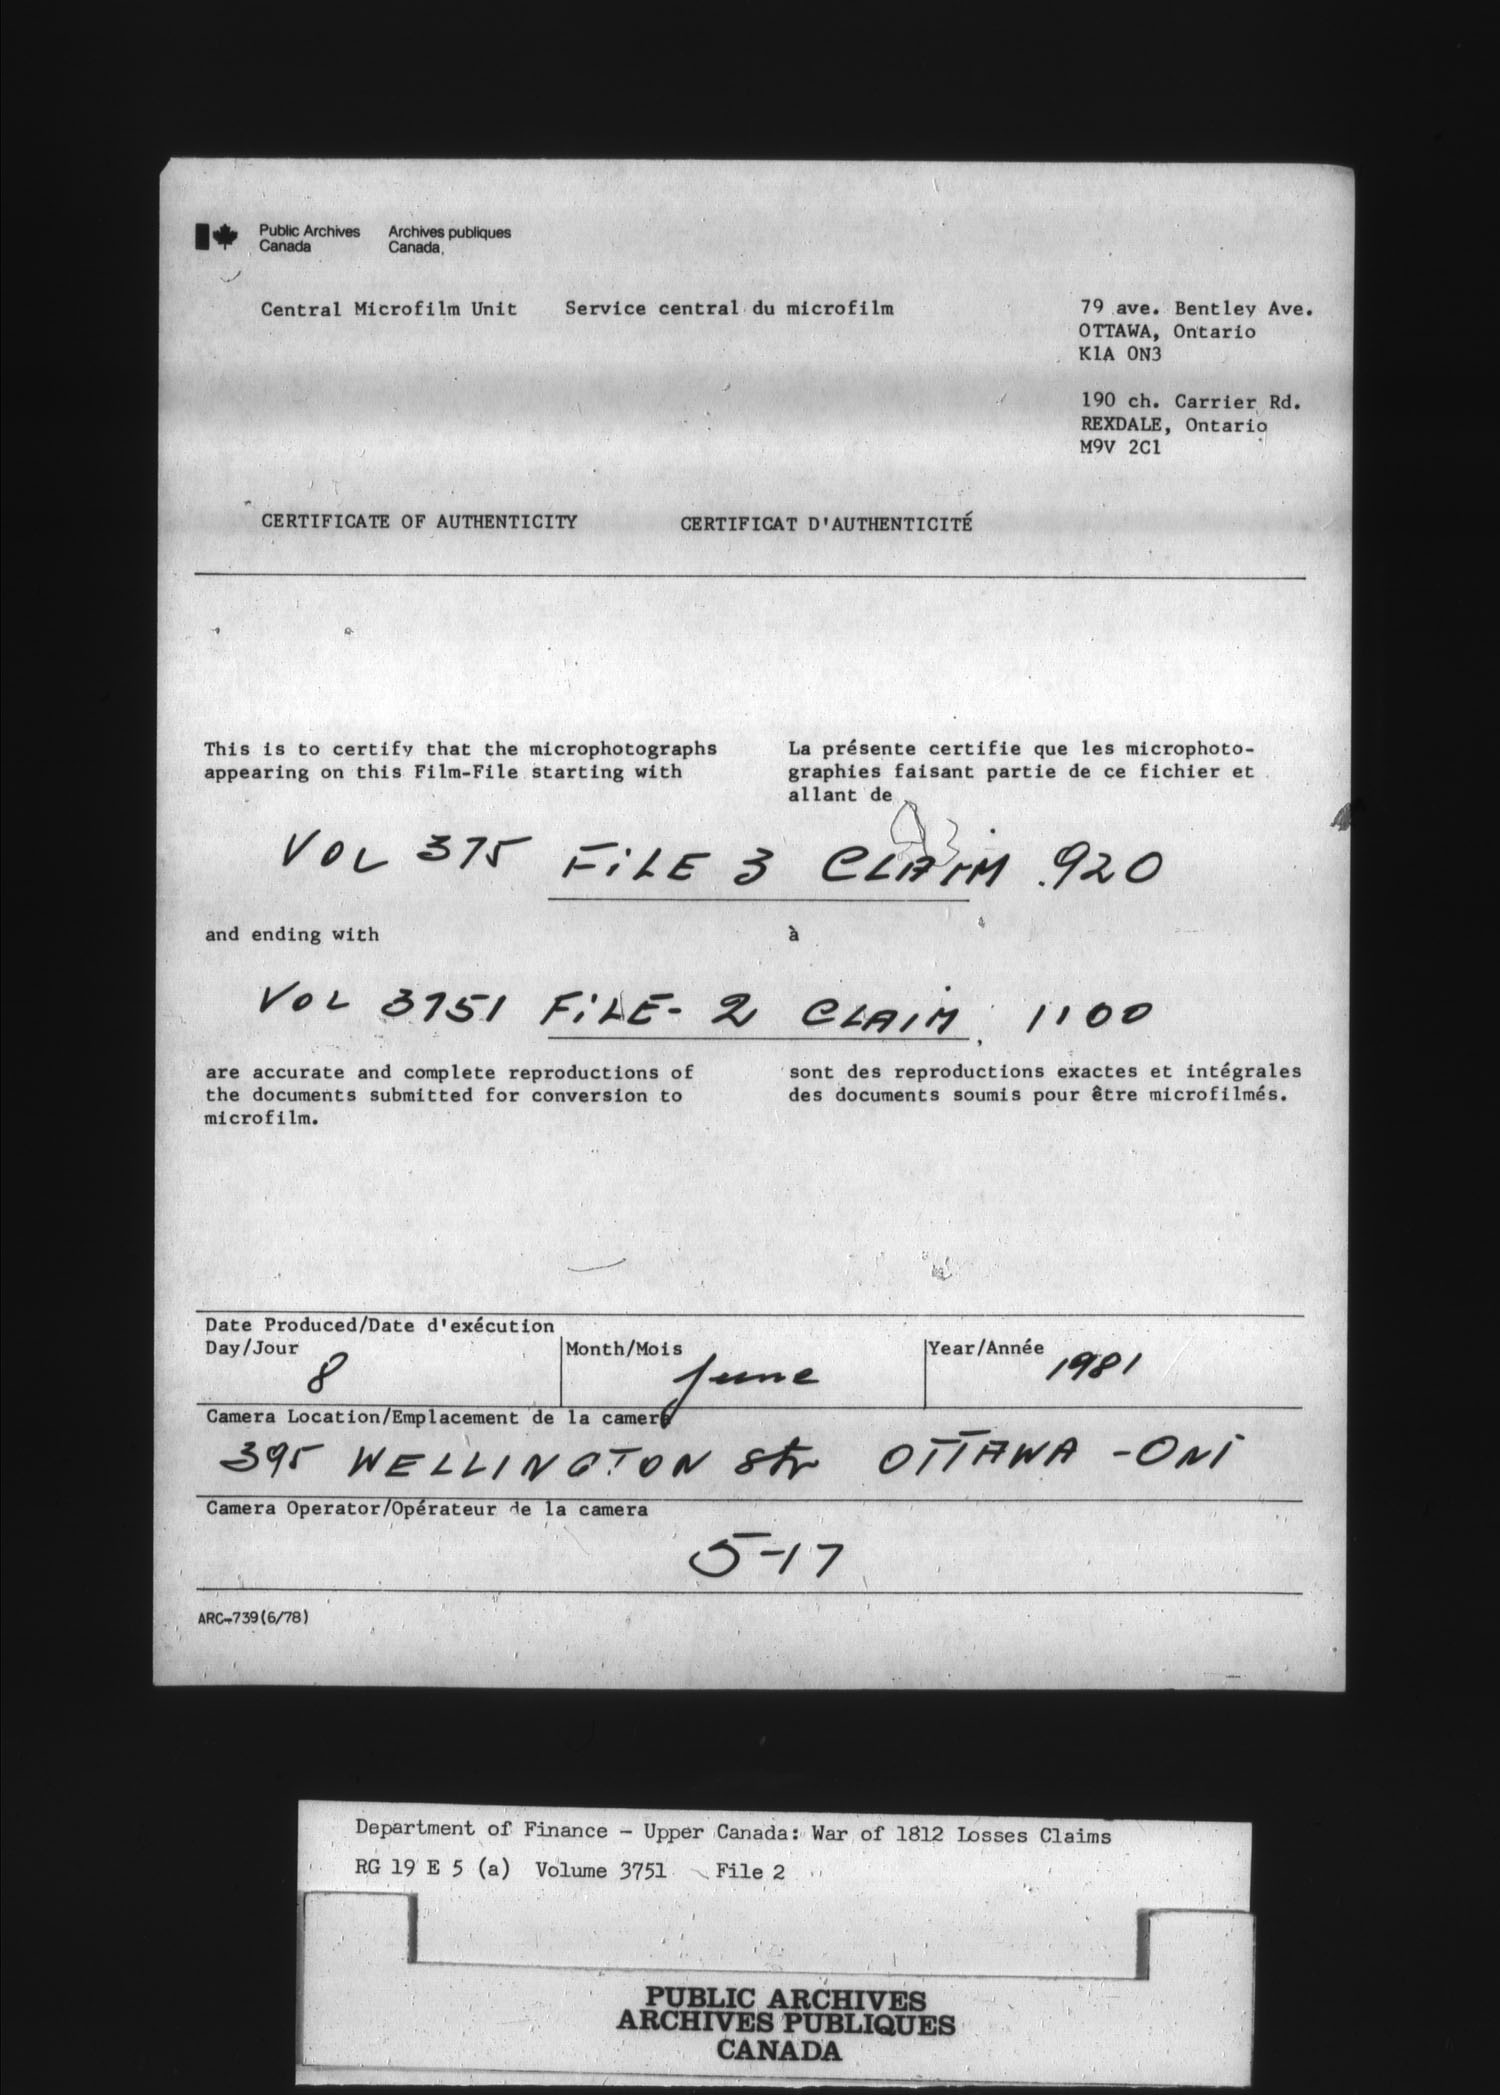 Title: War of 1812: Board of Claims for Losses, 1813-1848, RG 19 E5A - Mikan Number: 139215 - Microform: t-1133